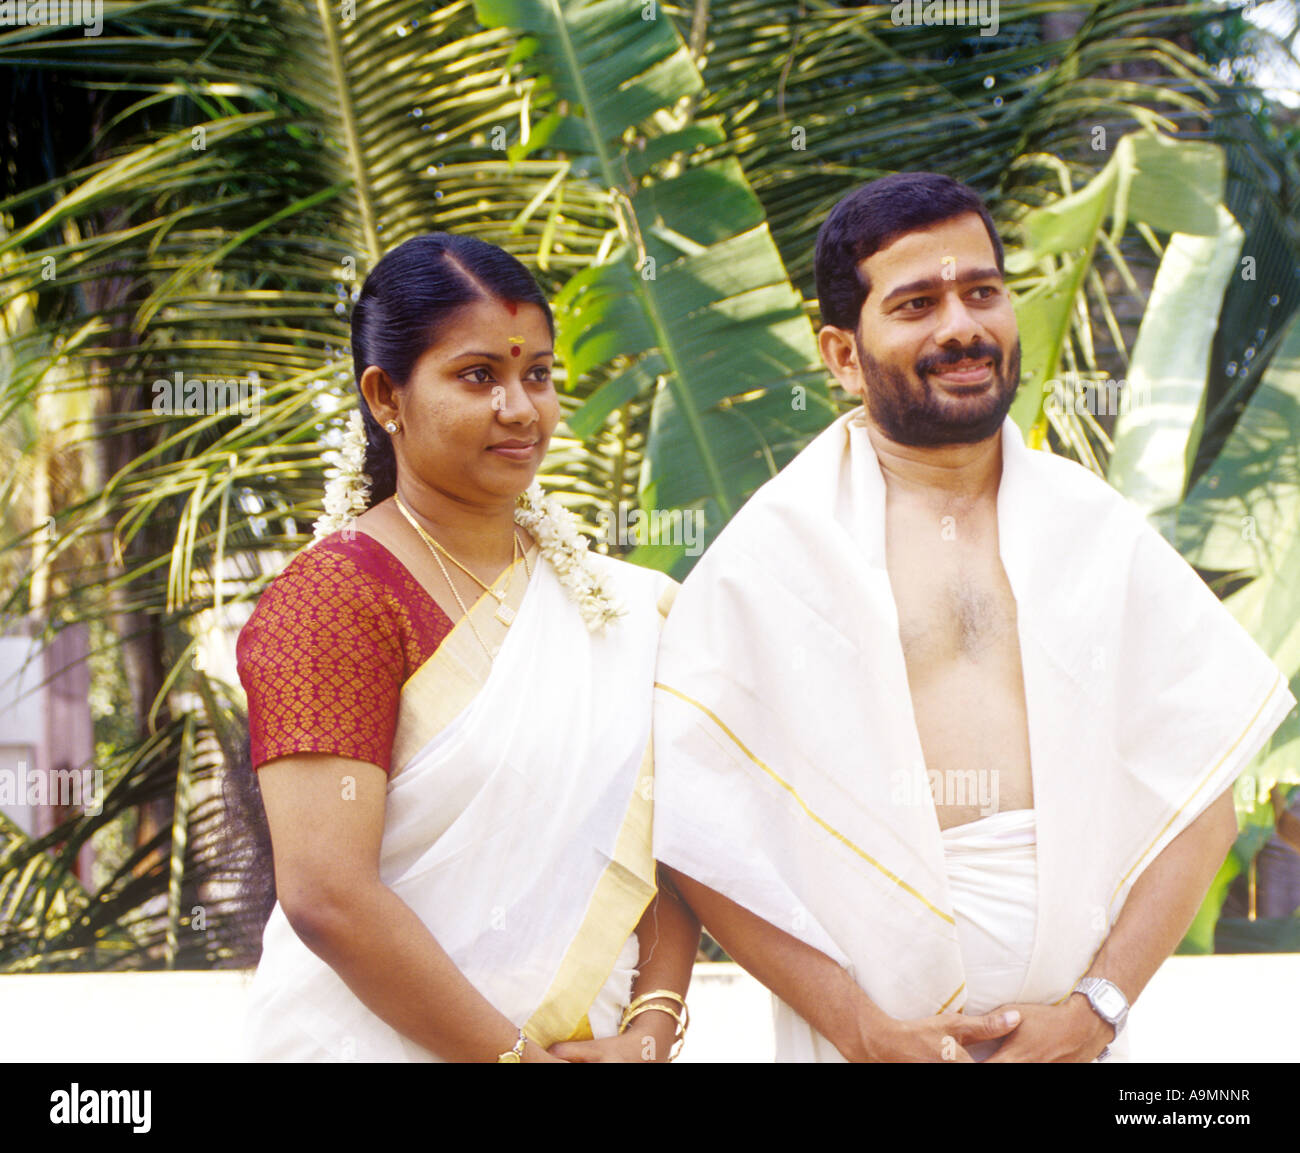 A COUPLE IN TRADITIONAL KERALA ATTIRE - Stock Image